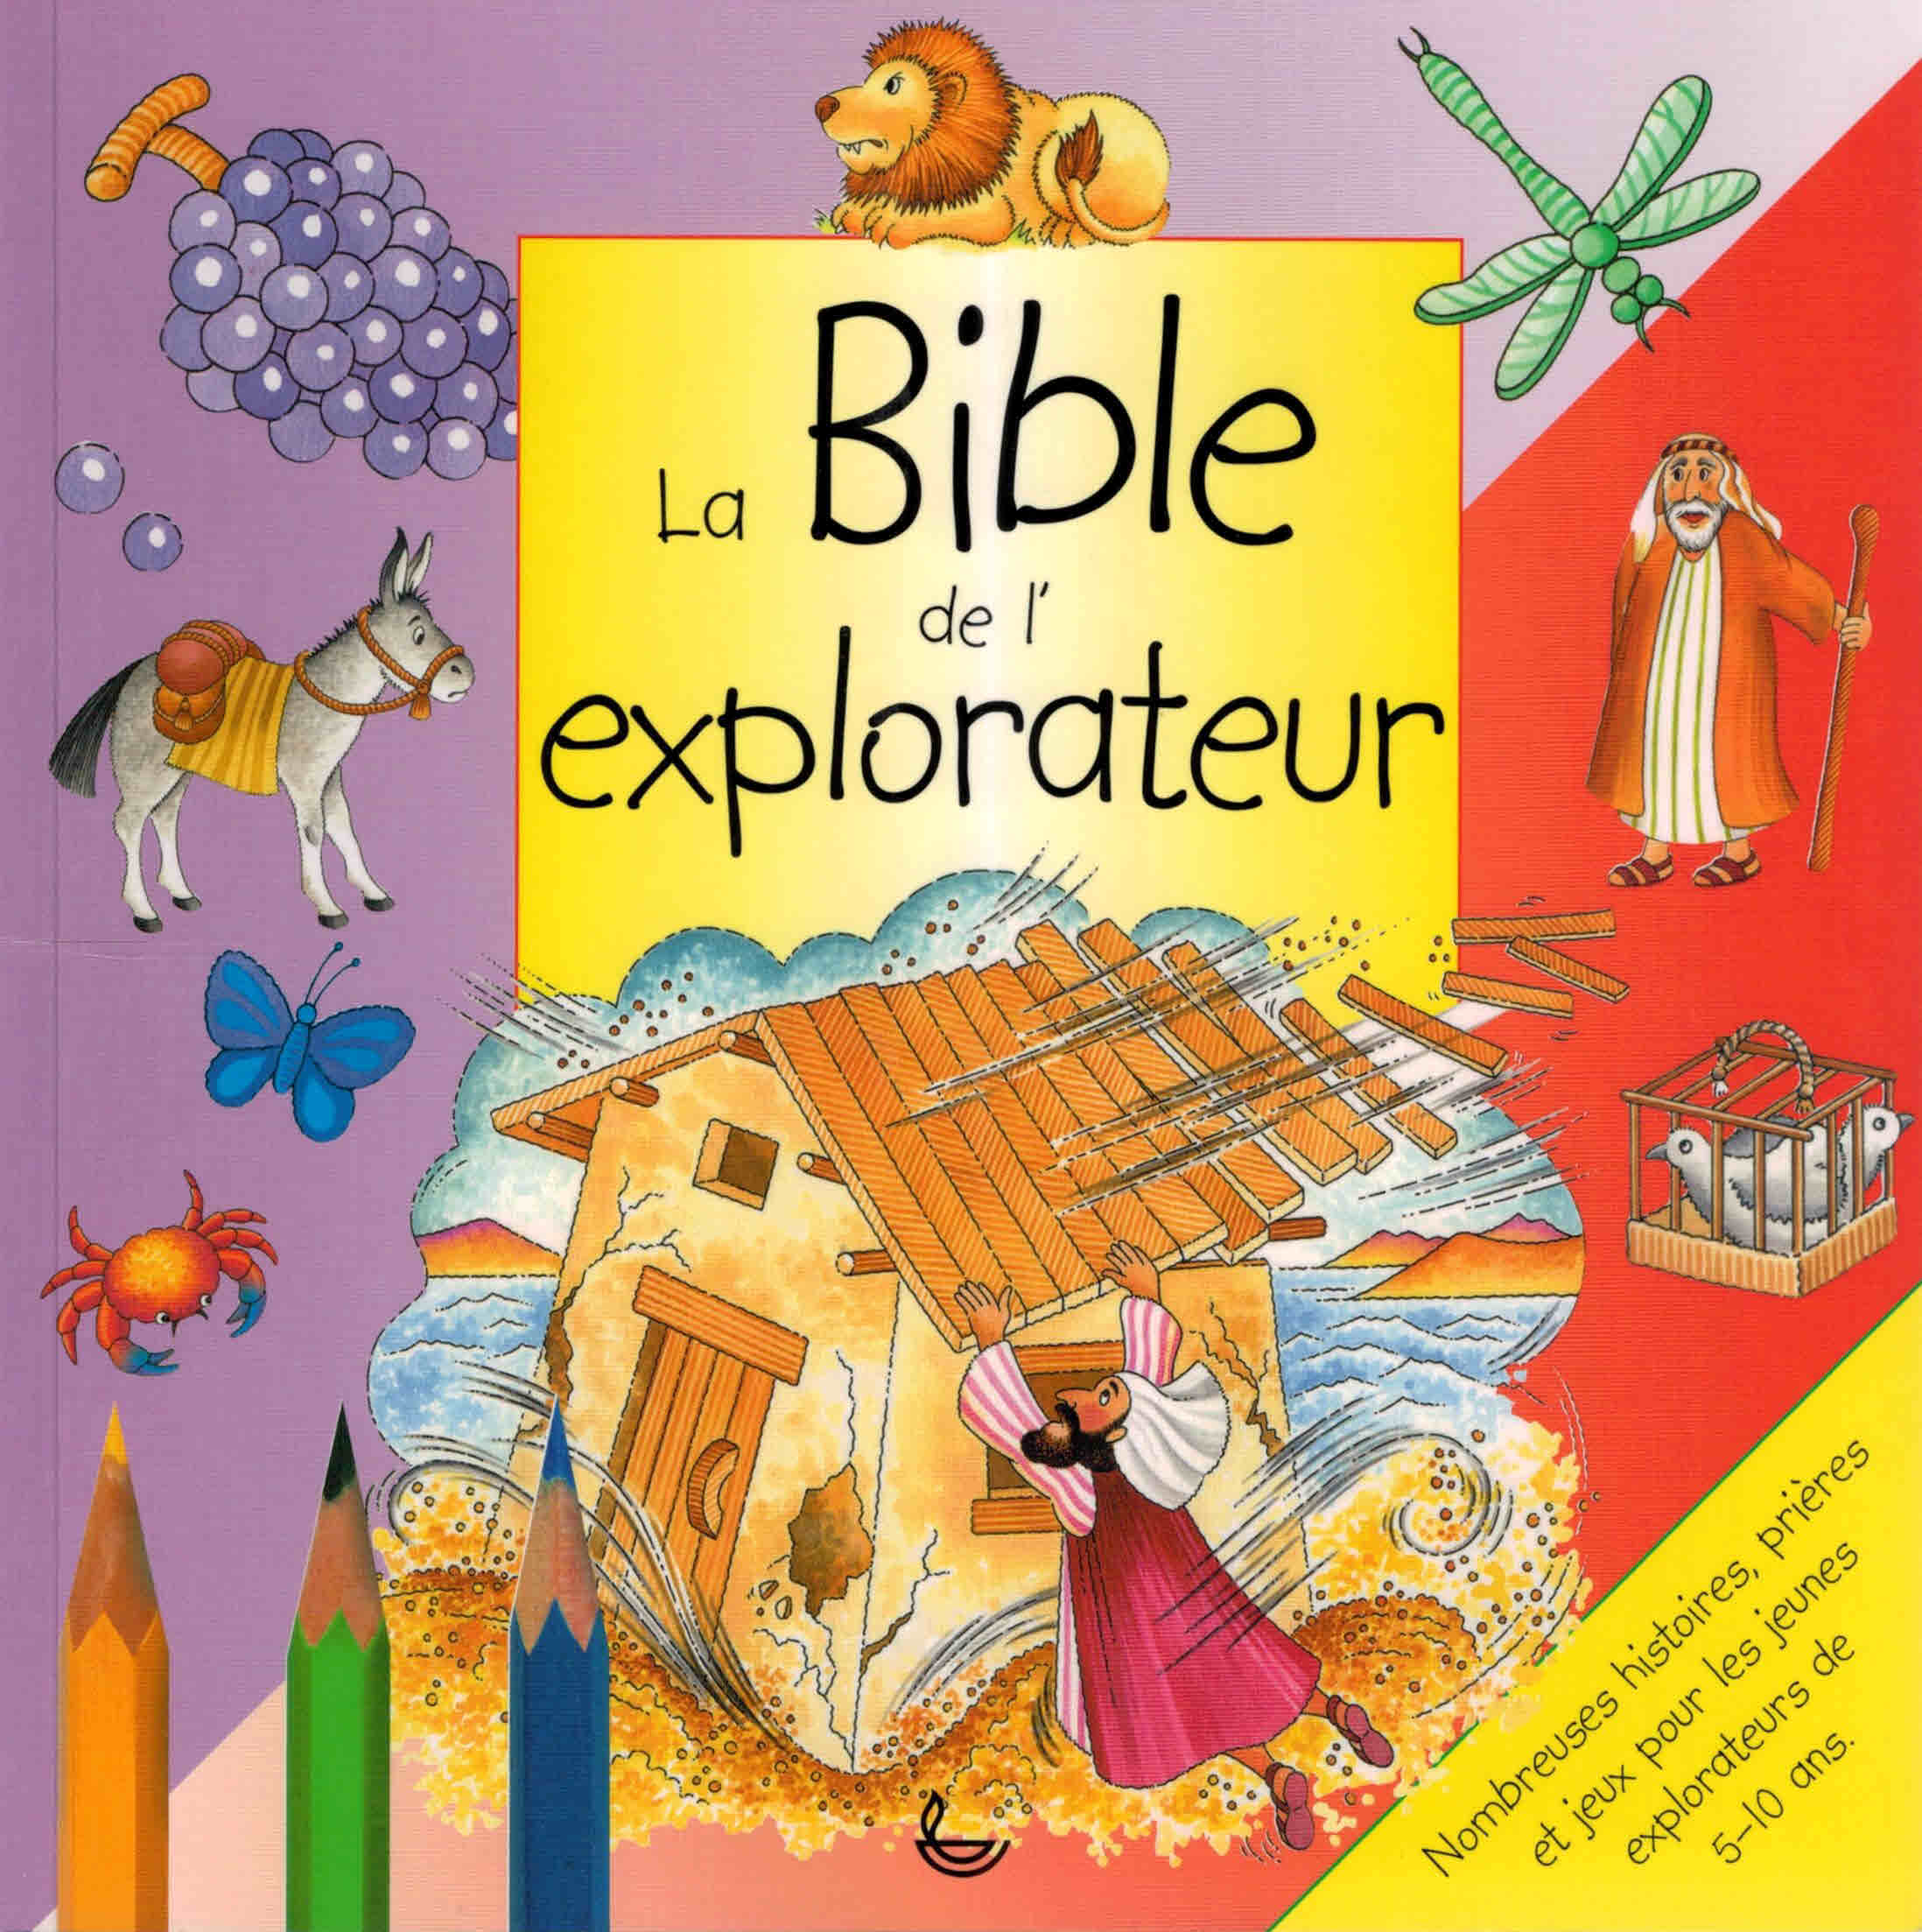 La Bible de l'explorateur